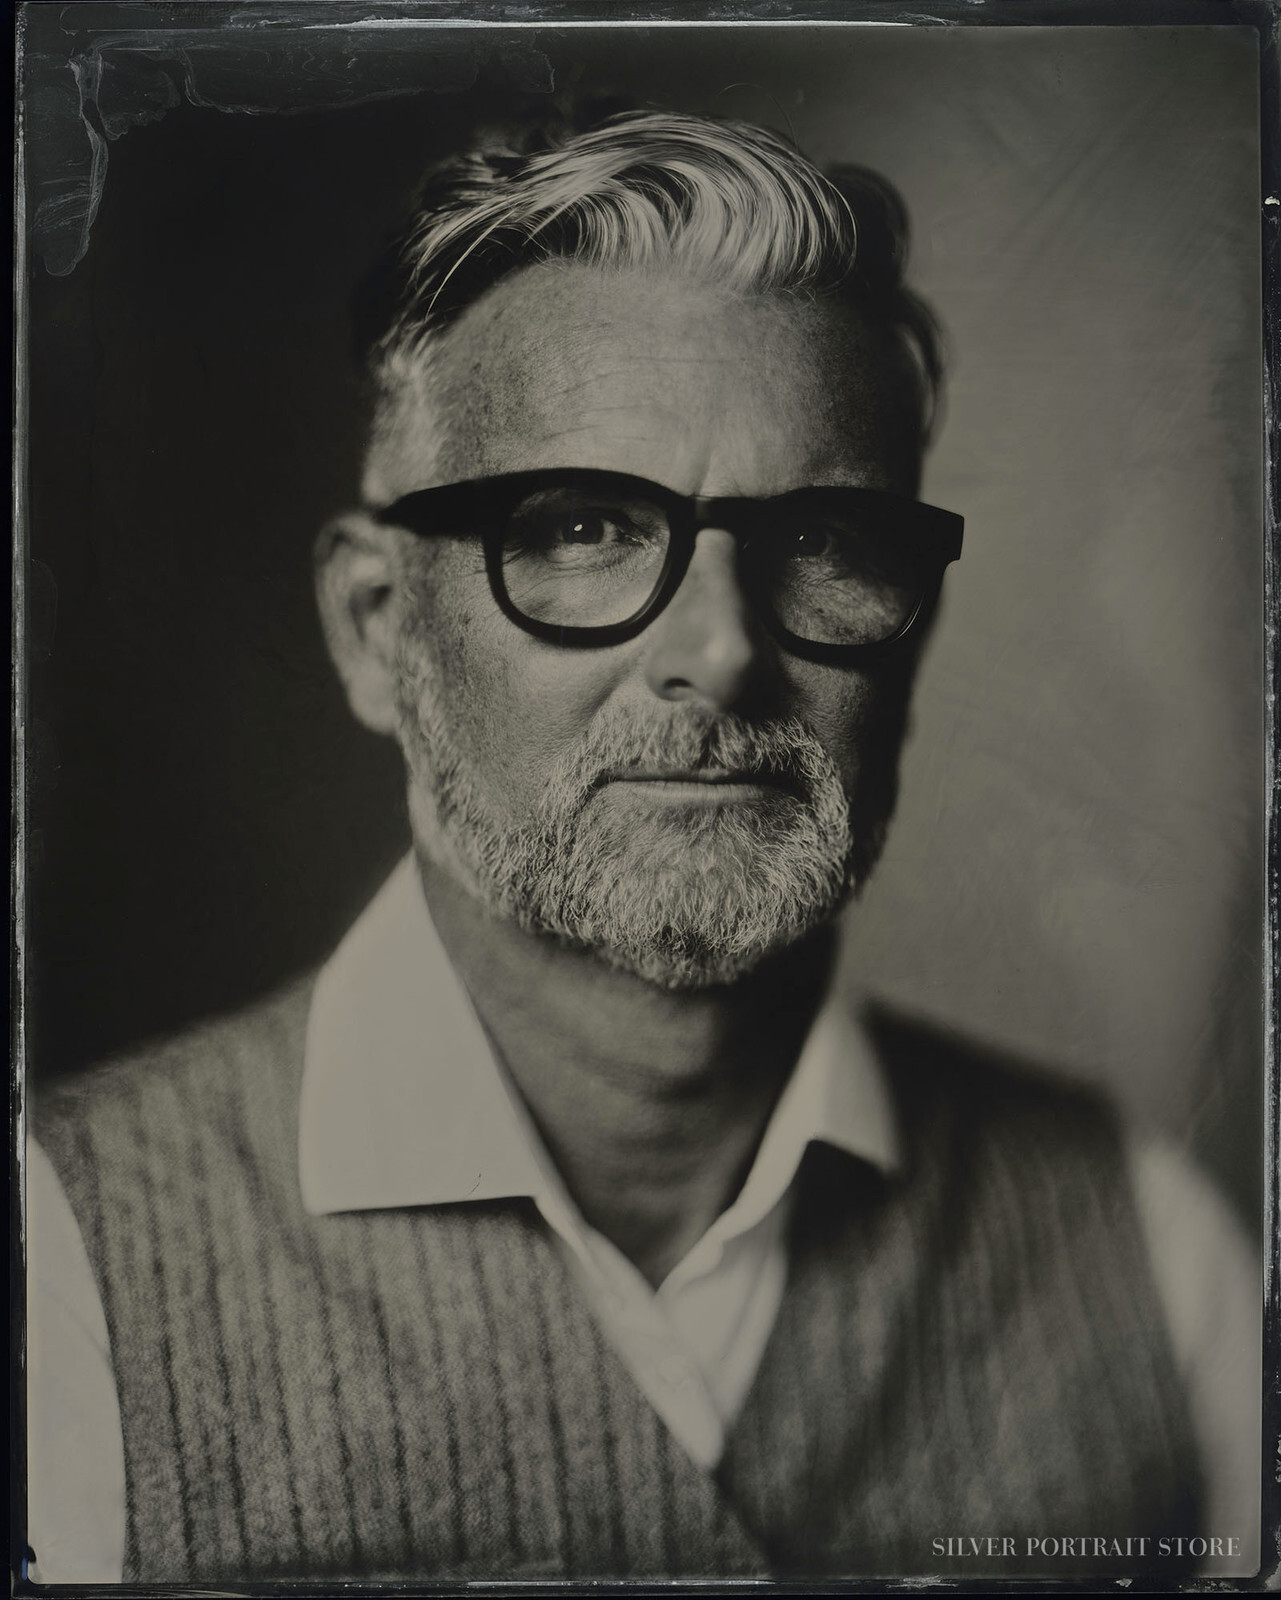 Marc-Silver Portrait Store-Wet plate collodion-Tintype 20 x 25 cm.